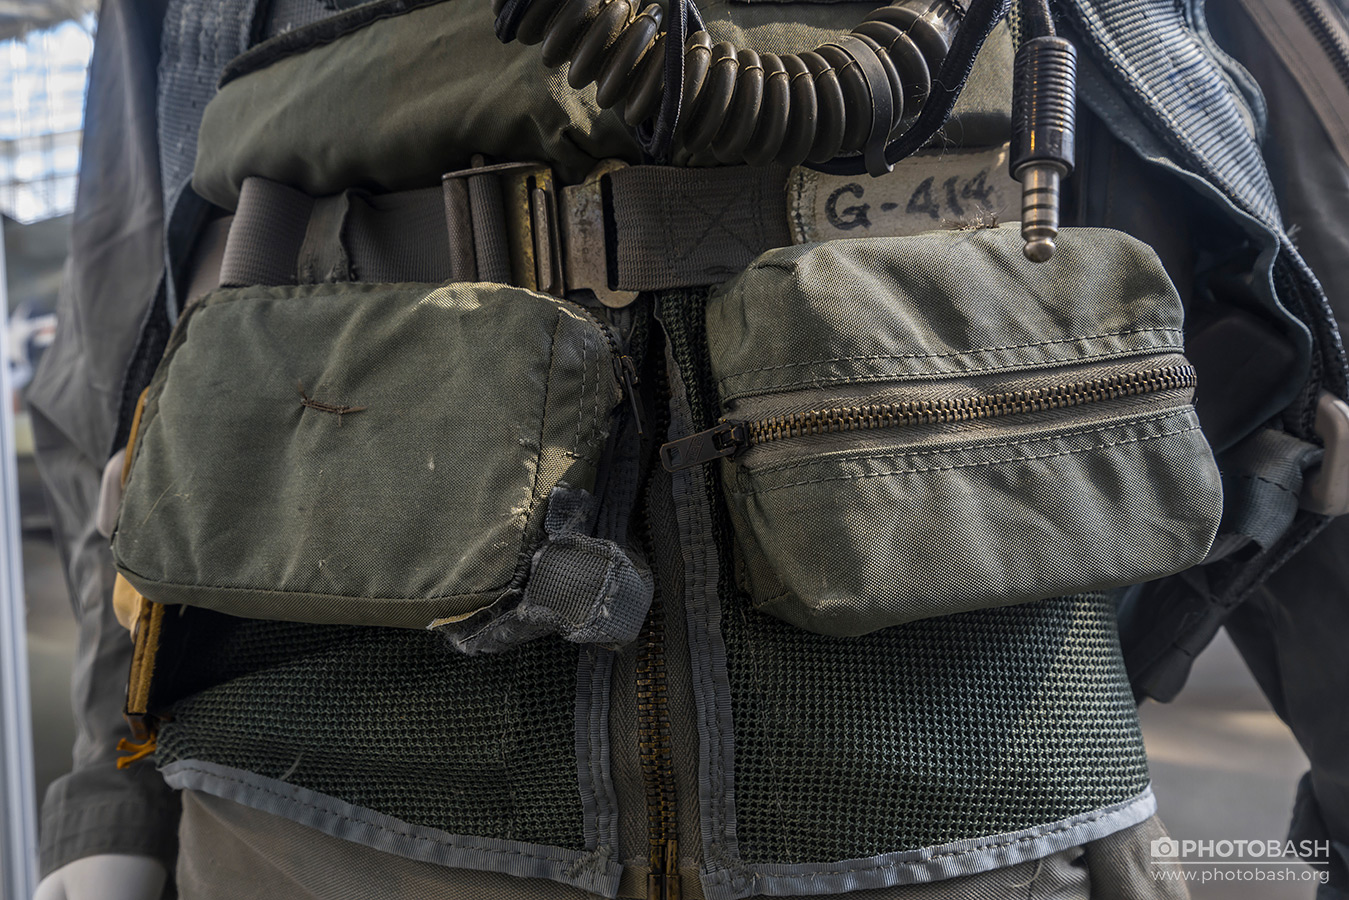 Fighter-Pilot-Fabric-Pouch-Outfit.jpg